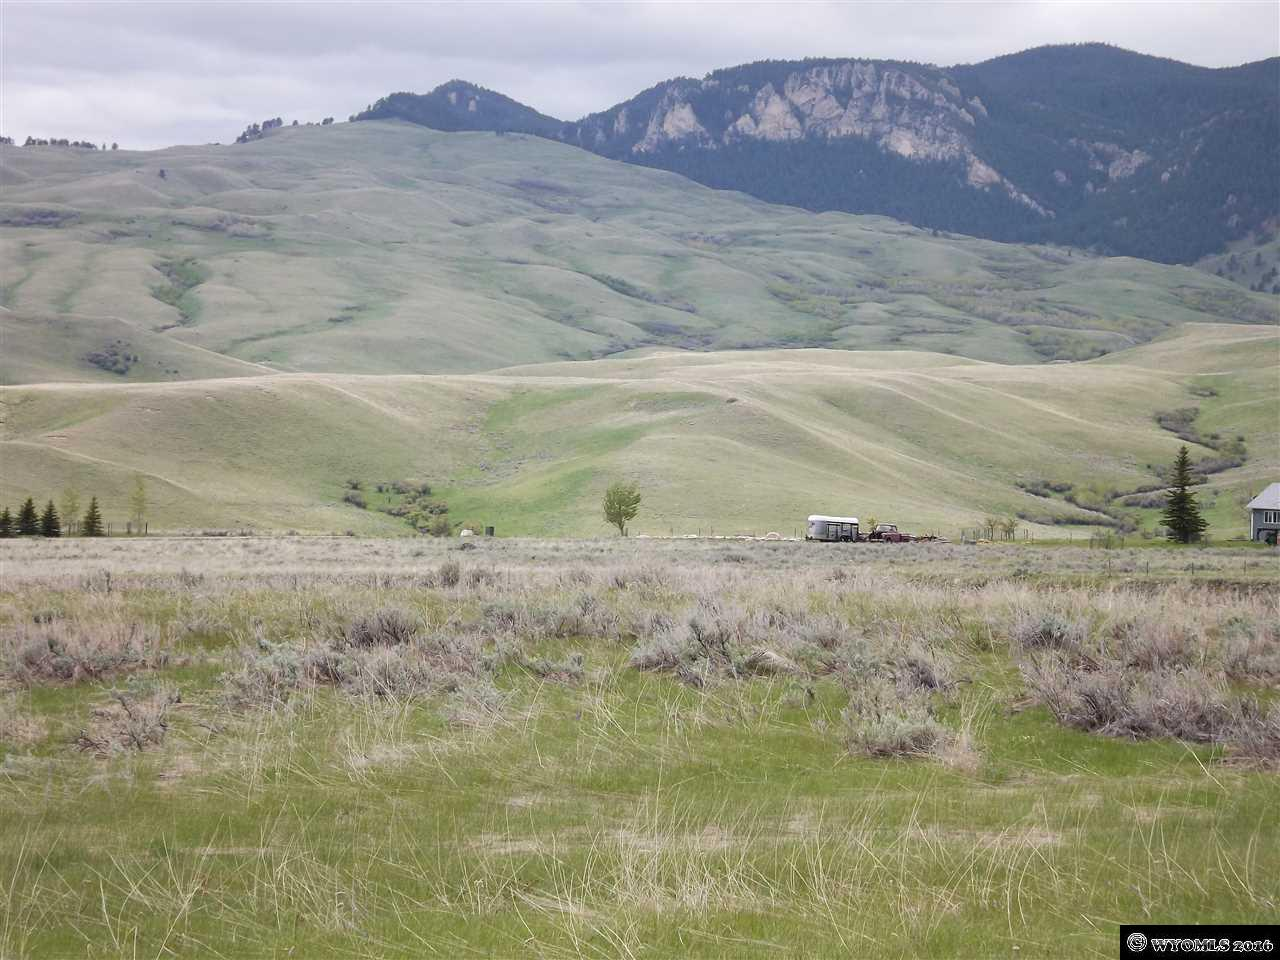 Beautiful 5 acres, with view of Lake Desmet and the Big Horn Mountians! Great building spots and plenty of pasture for your horse or cow. Good access with end of the road location. This is a great price too! See documents for map. Survey pins have been located and marked with pink tape.